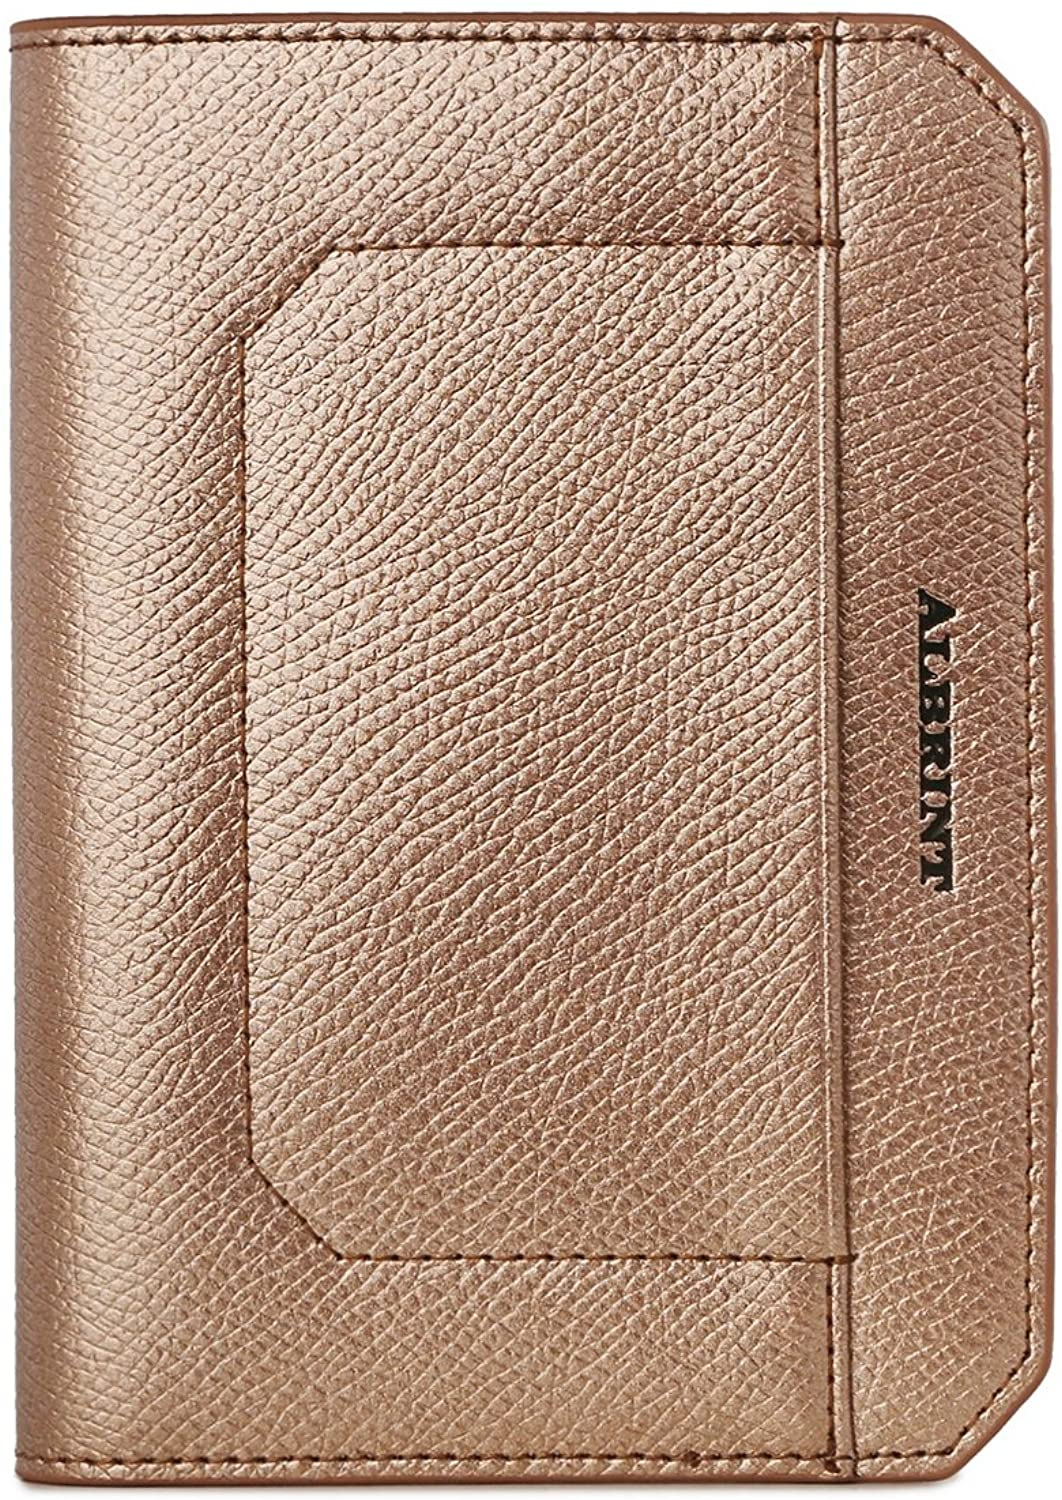 ALBRINT Travel Passport Holder Rfid Blocking Leather Passport Wallet Slim Cover, Rose Gold